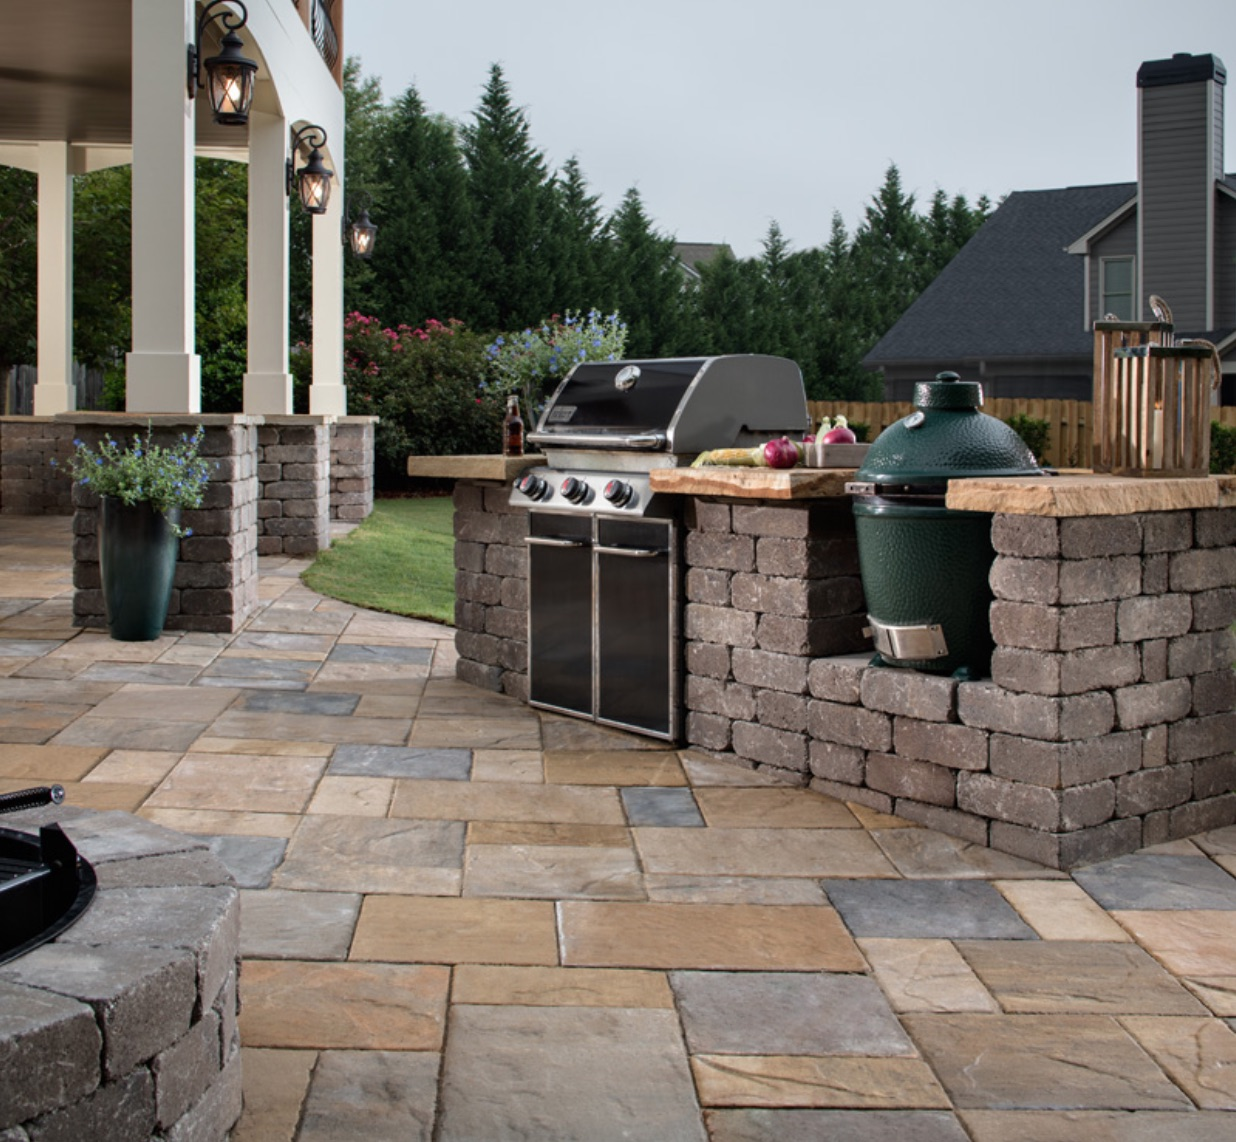 Outdoor Kitchen with Big Green Egg Insert